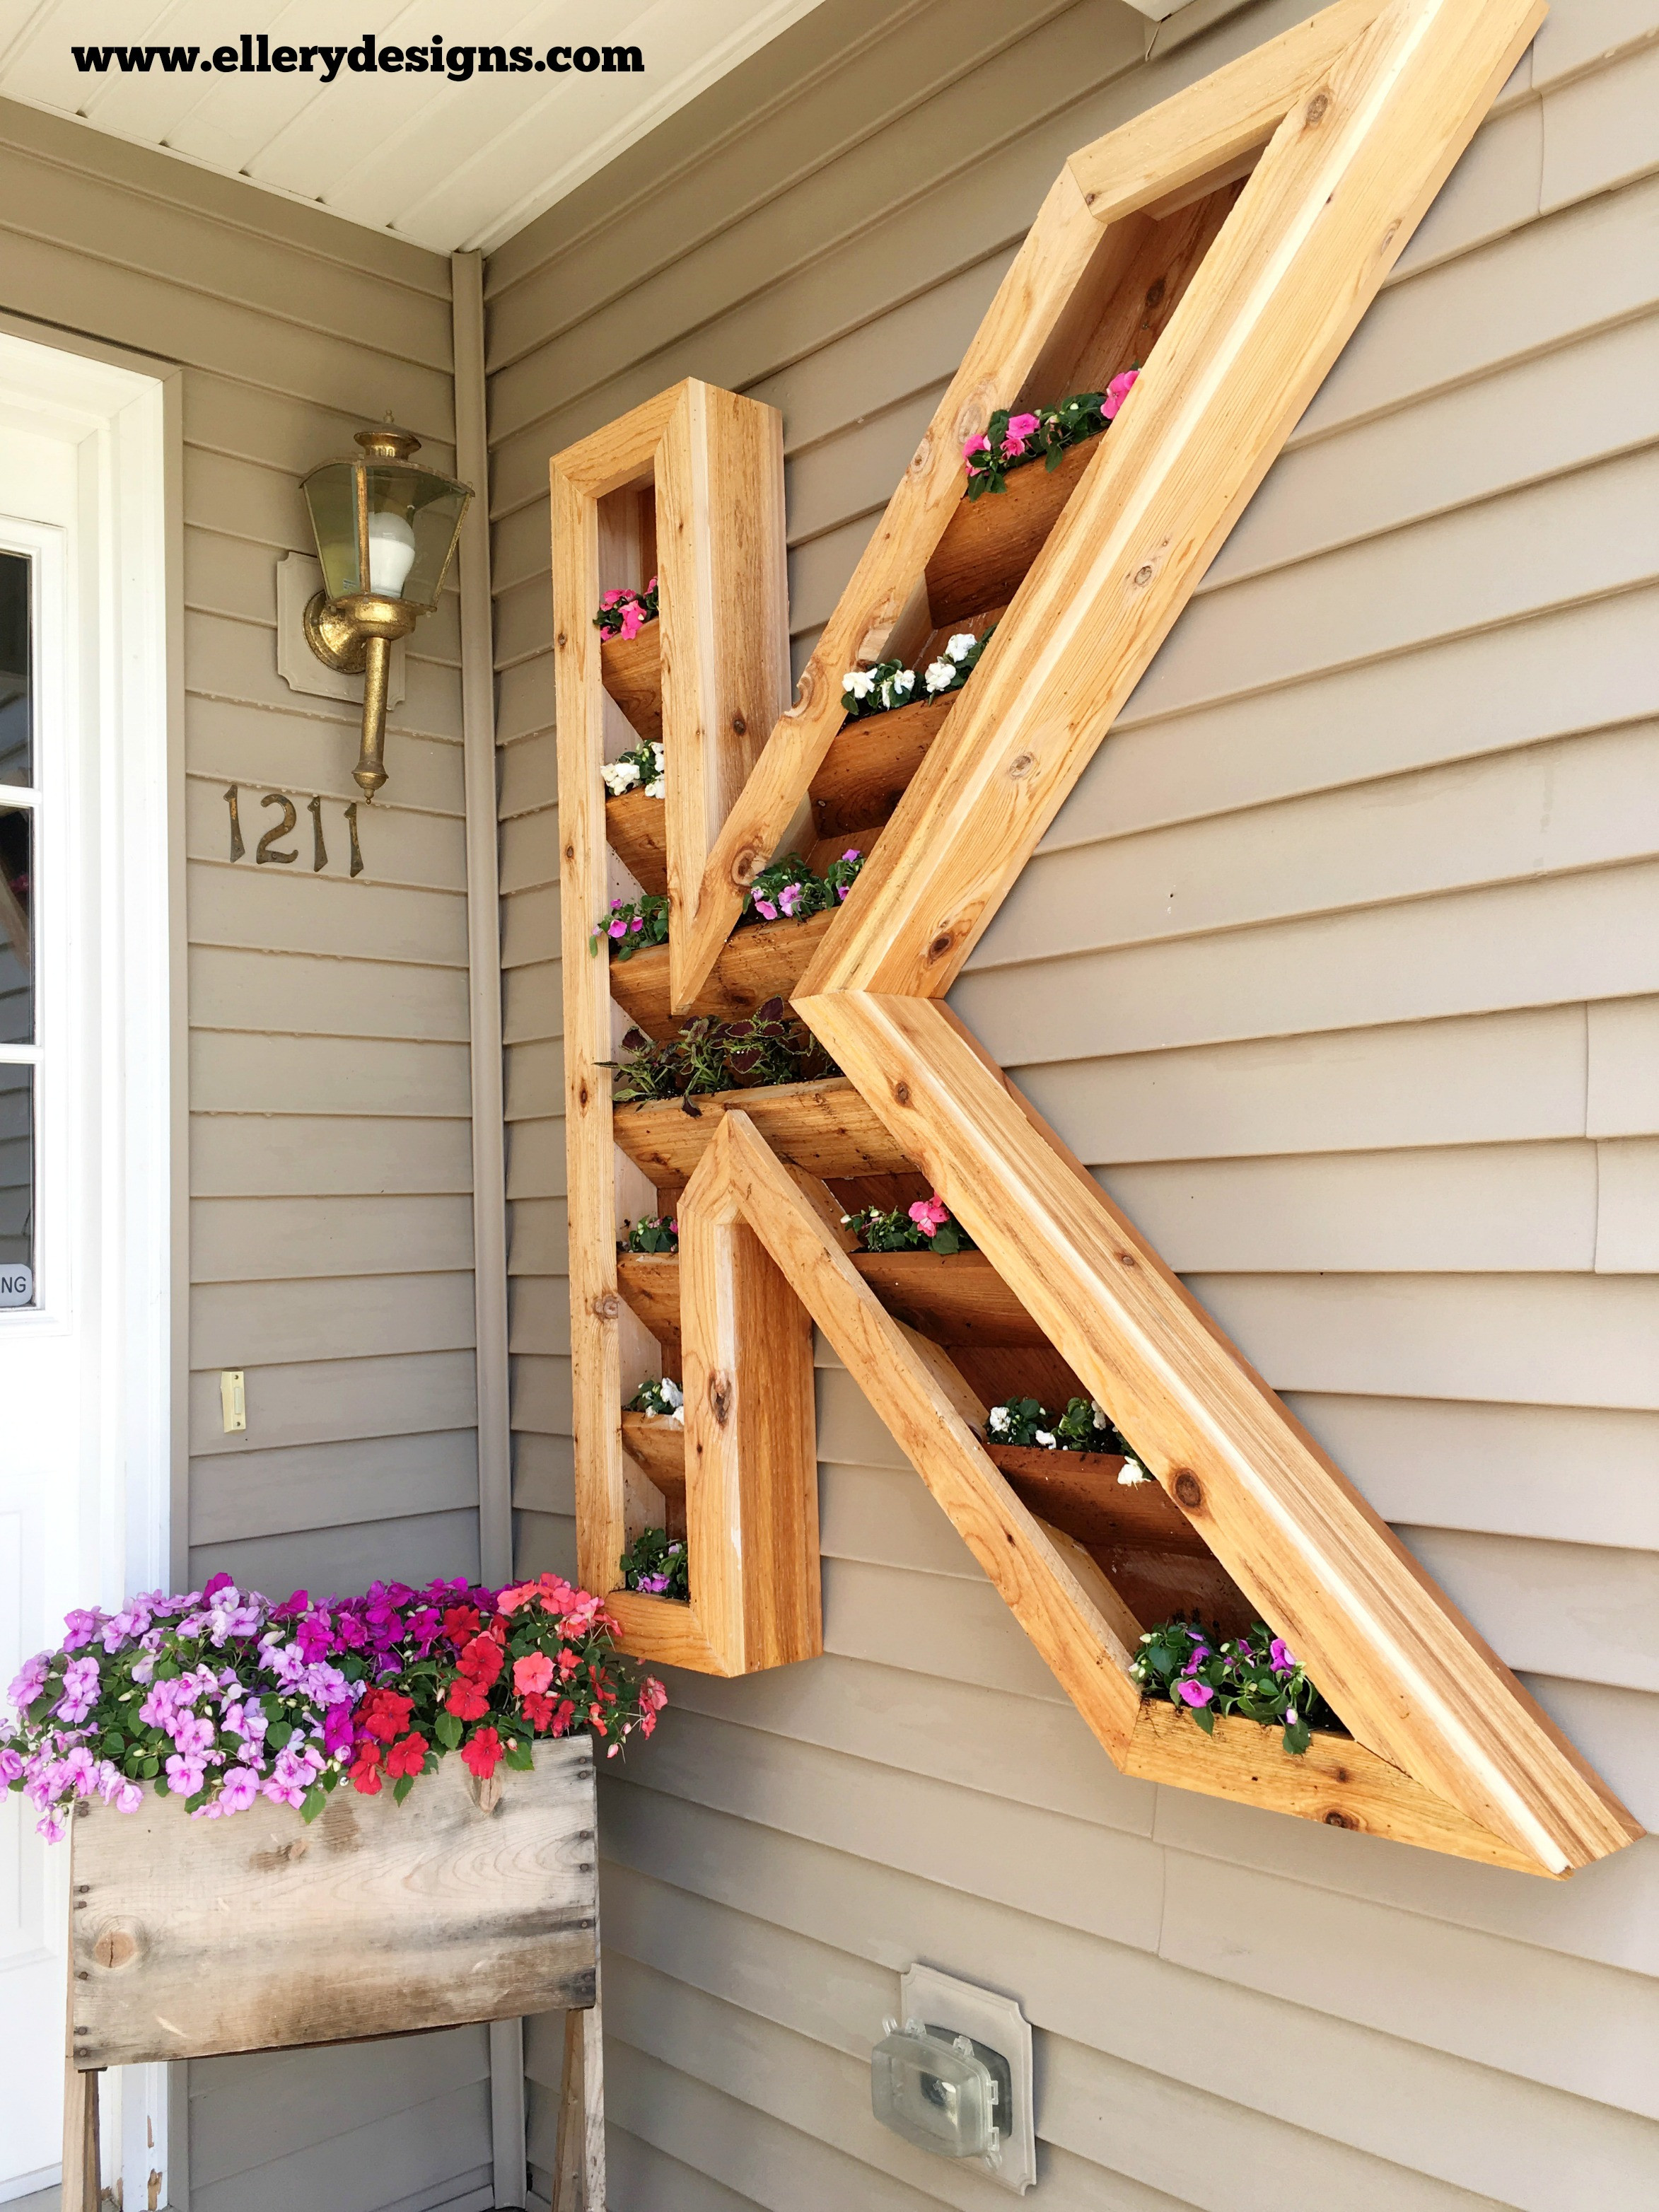 Best ideas about DIY Cedar Planter Box . Save or Pin DIY Cedar Monogram Planter Box – Ellery Designs Now.